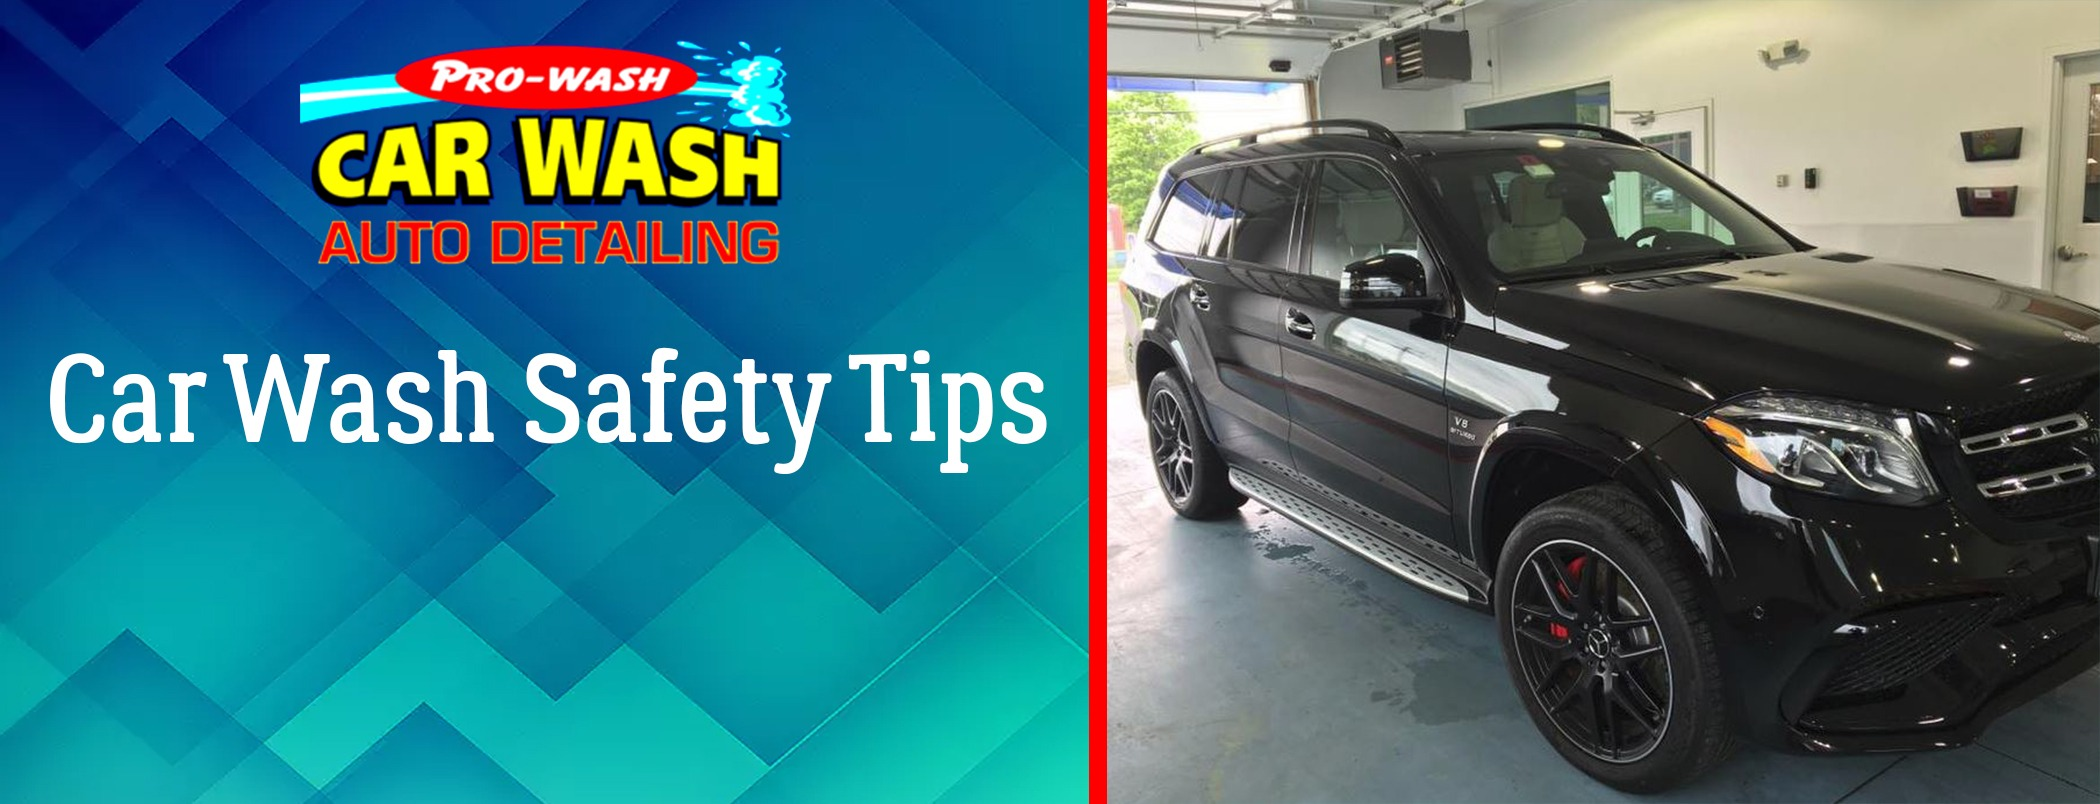 Car wash safety tips pro wash car wash auto detailing car wash vehicle safety tips solutioingenieria Choice Image